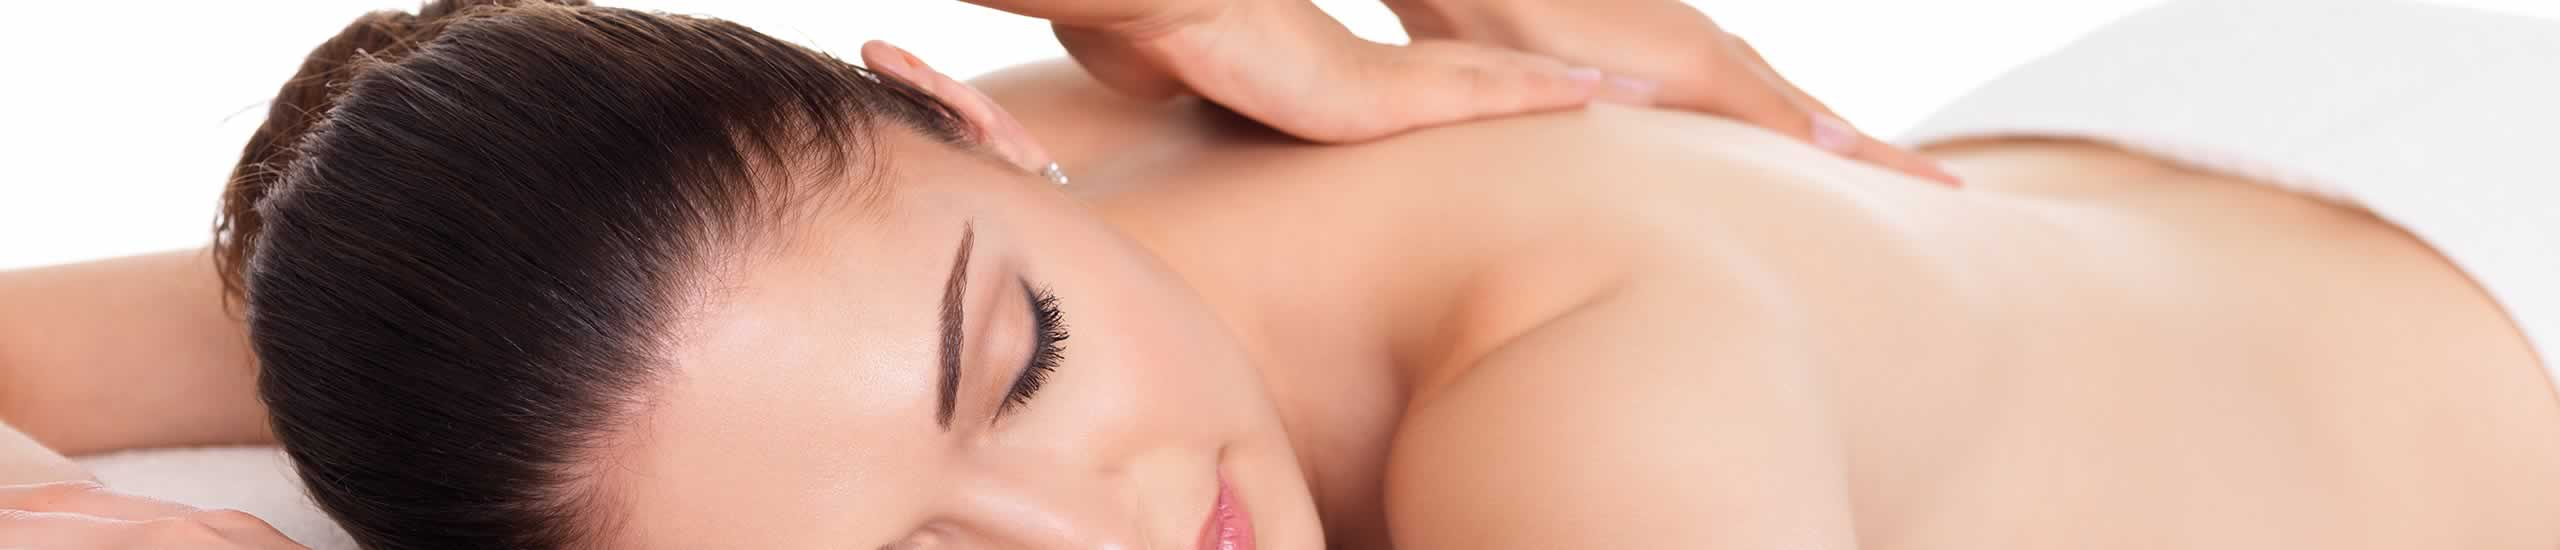 Beauty and Le Spa Treatment choices